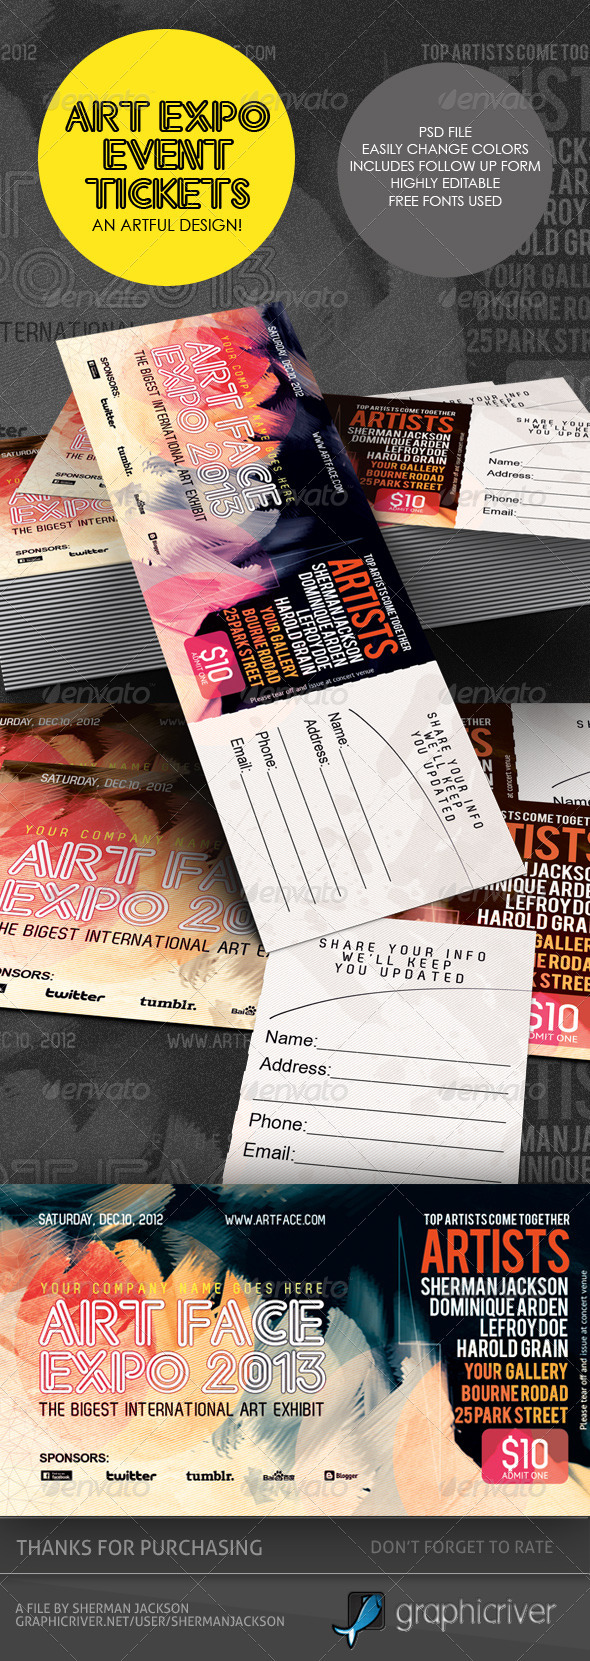 Event Ticket Designs Graphics, Designs & Templates